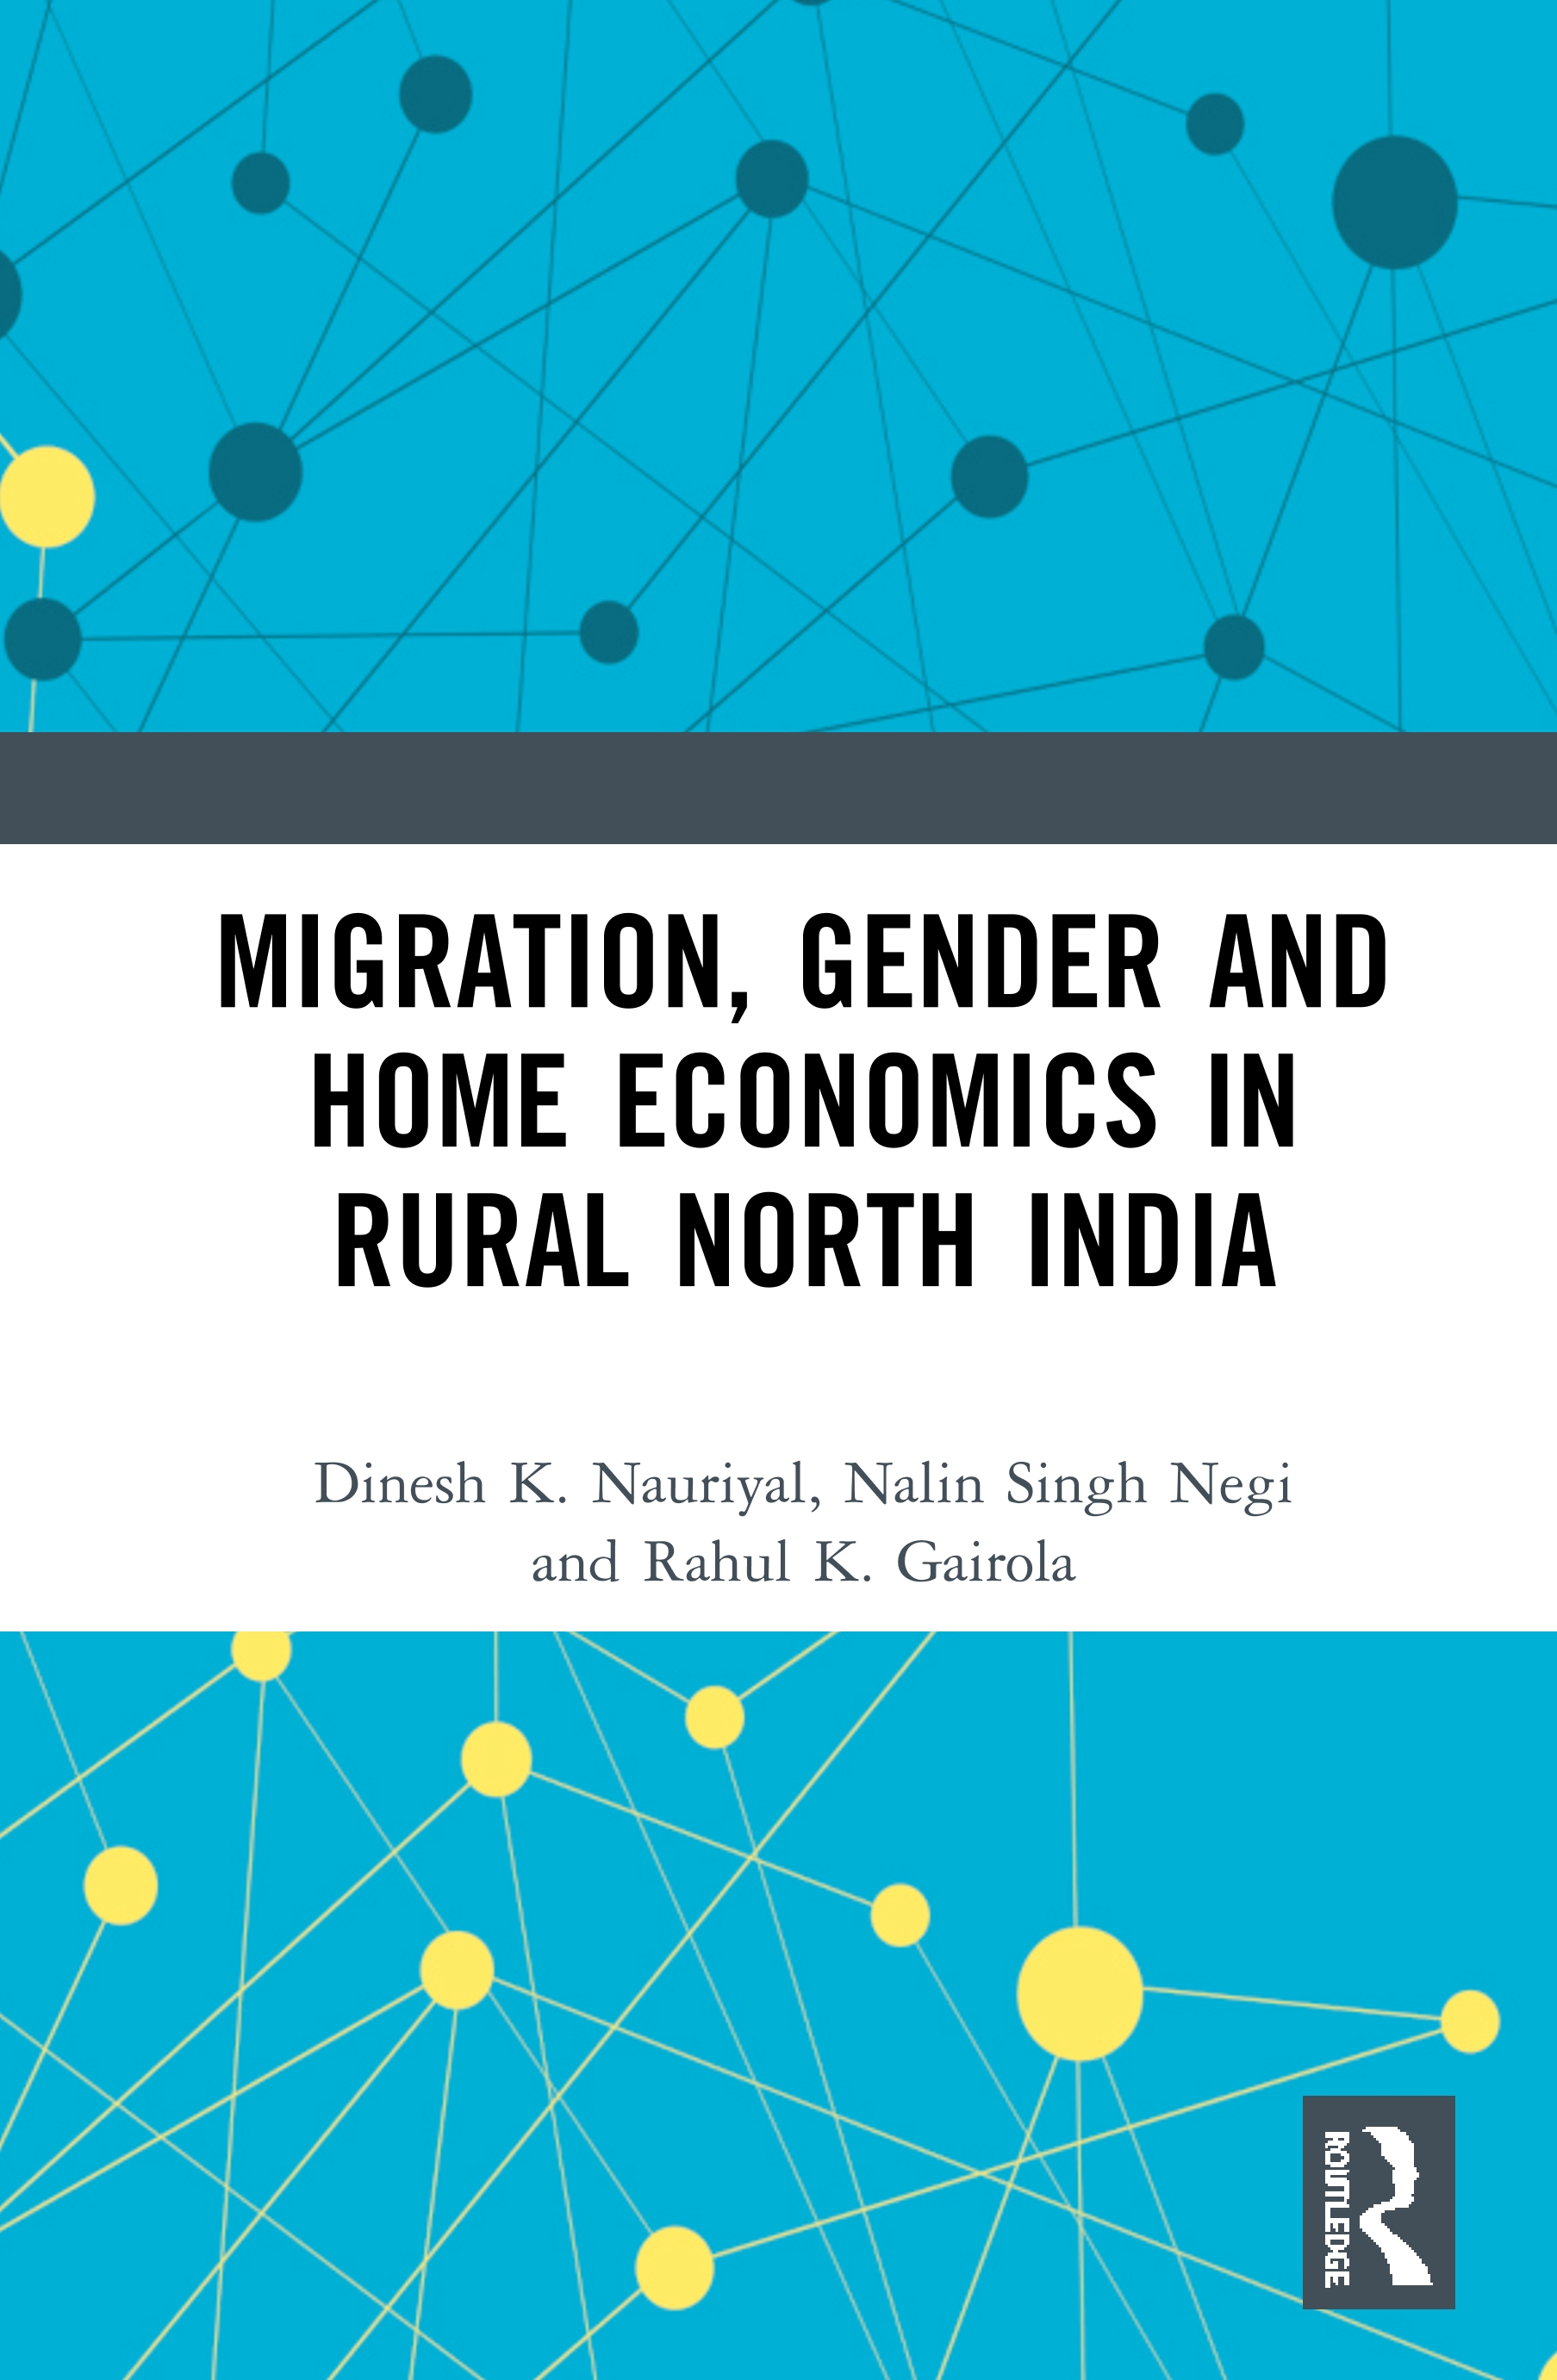 Migration, Gender and Home Economics in Rural North India book cover